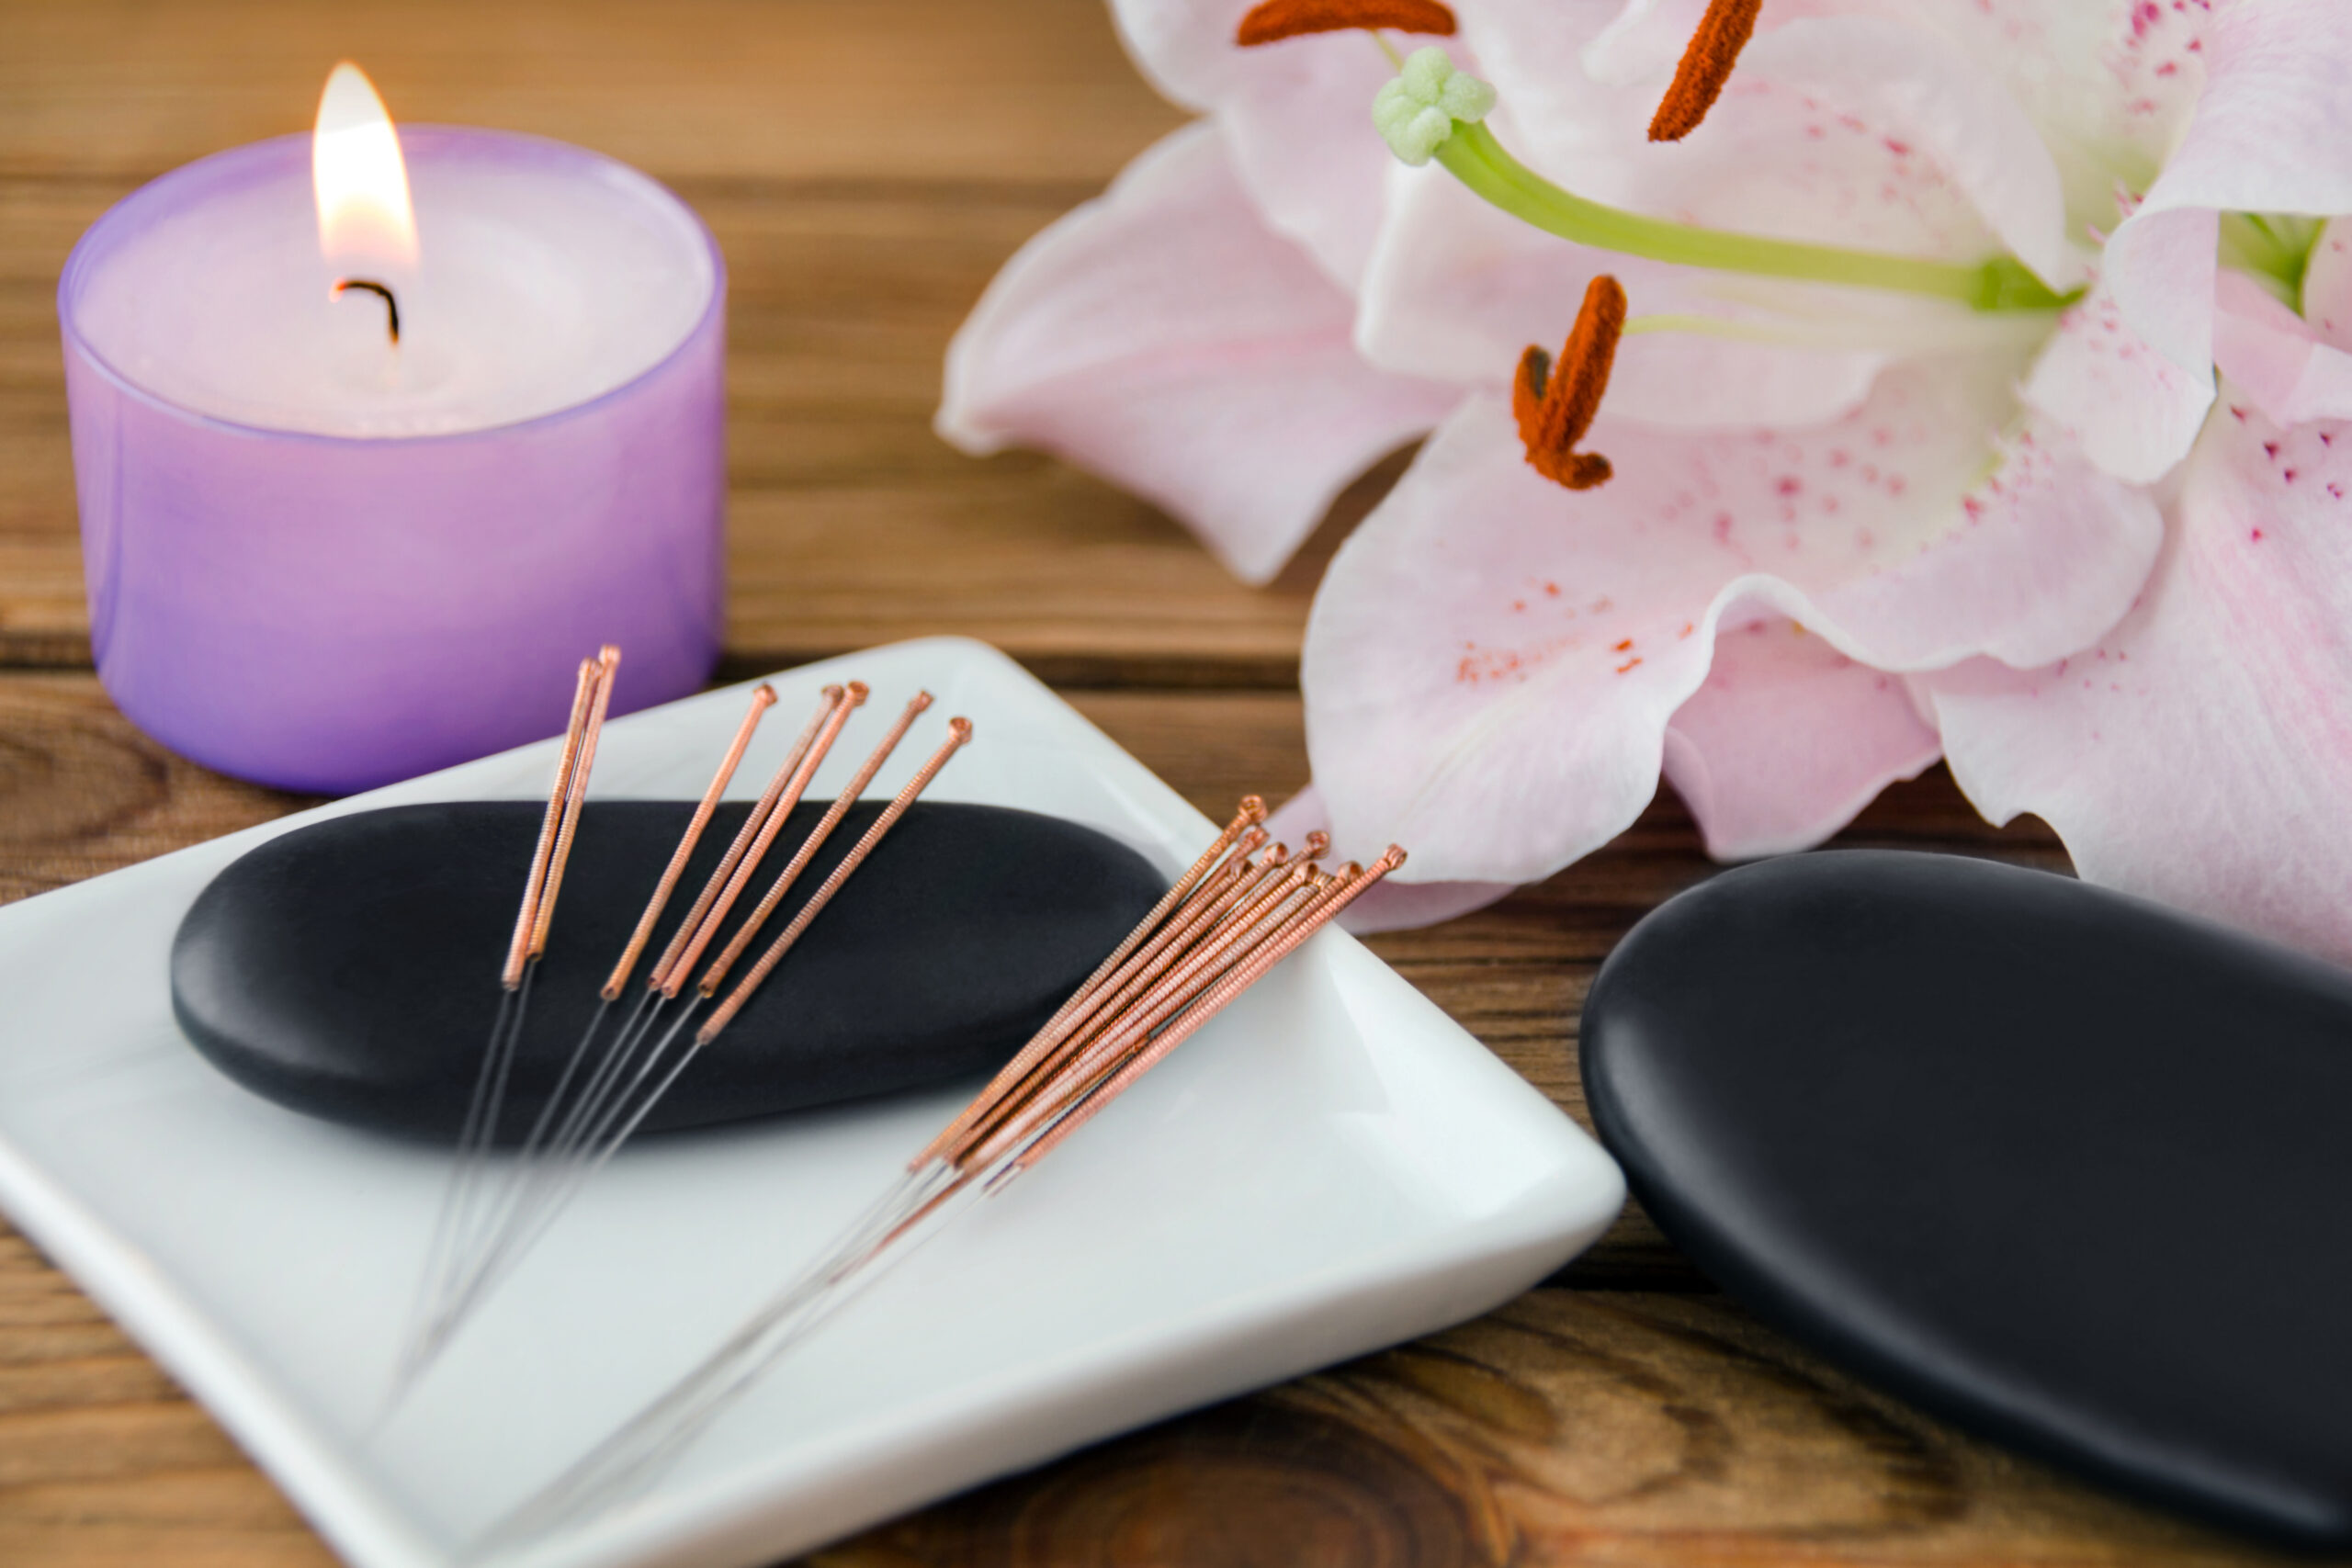 Acupuncture and Hot Stone Massage background